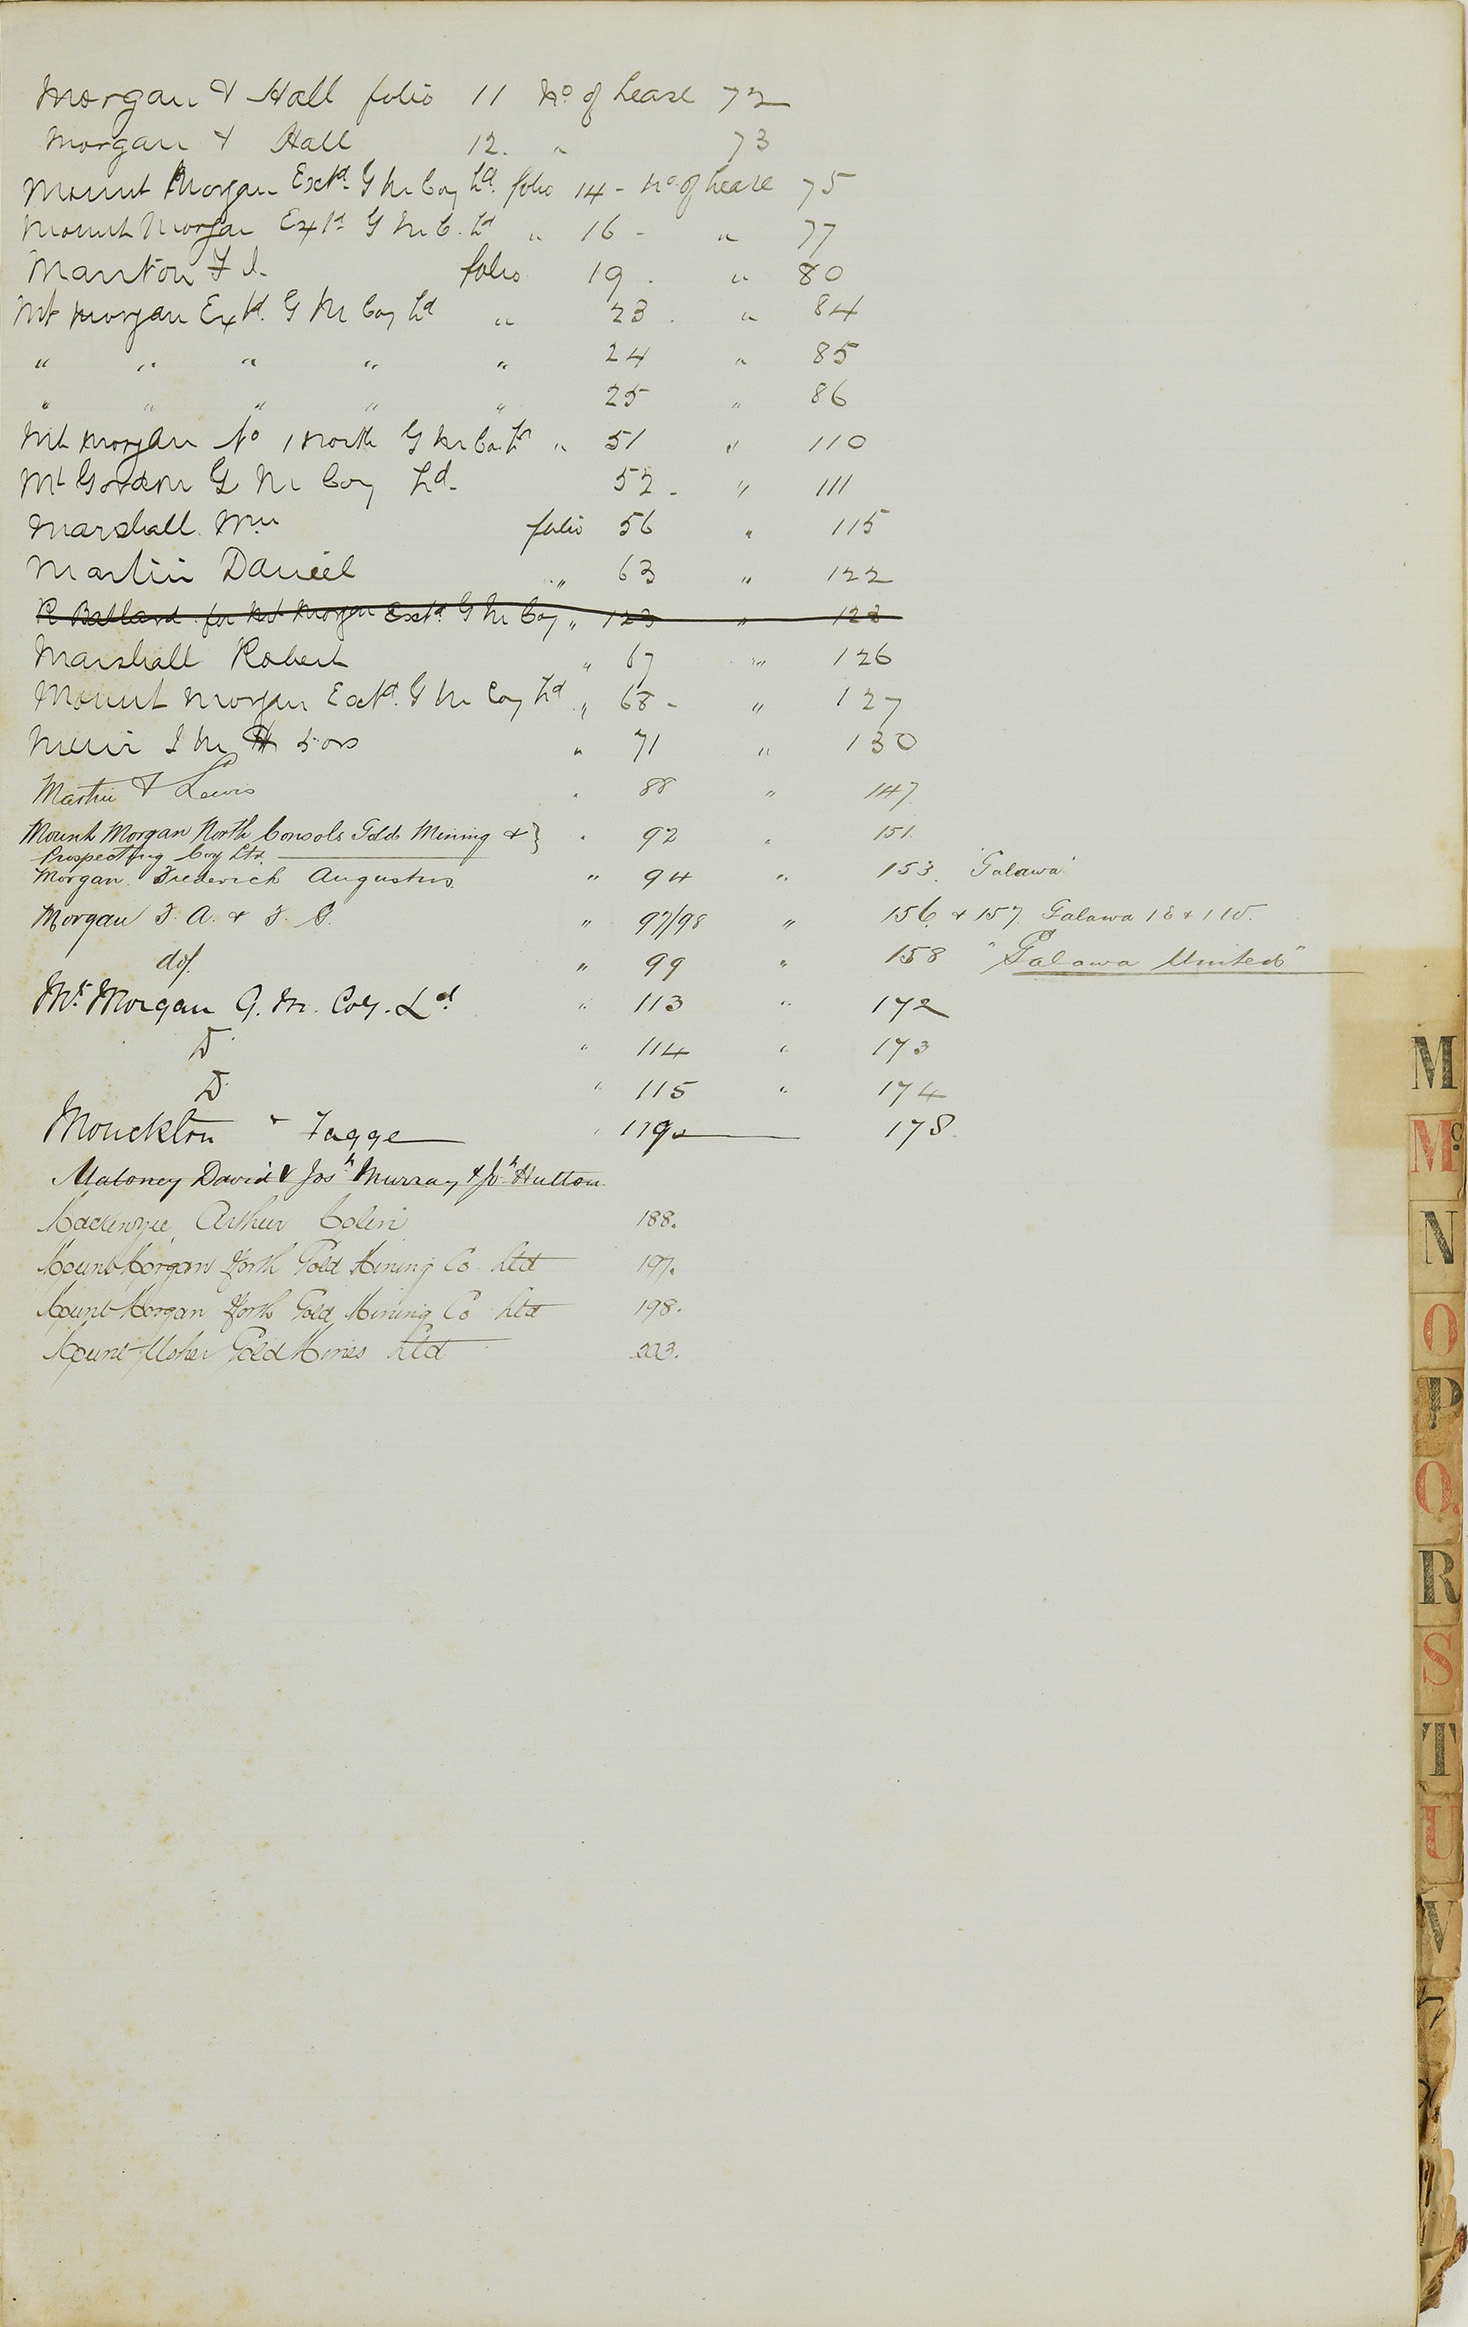 Excerpt from the index to applications for gold mining leases at Mount Morgan. Shows the Morgan brothers' original claims, plus subsequent claims by the Mount Morgan Gold Mining Company. [IID: 85947]